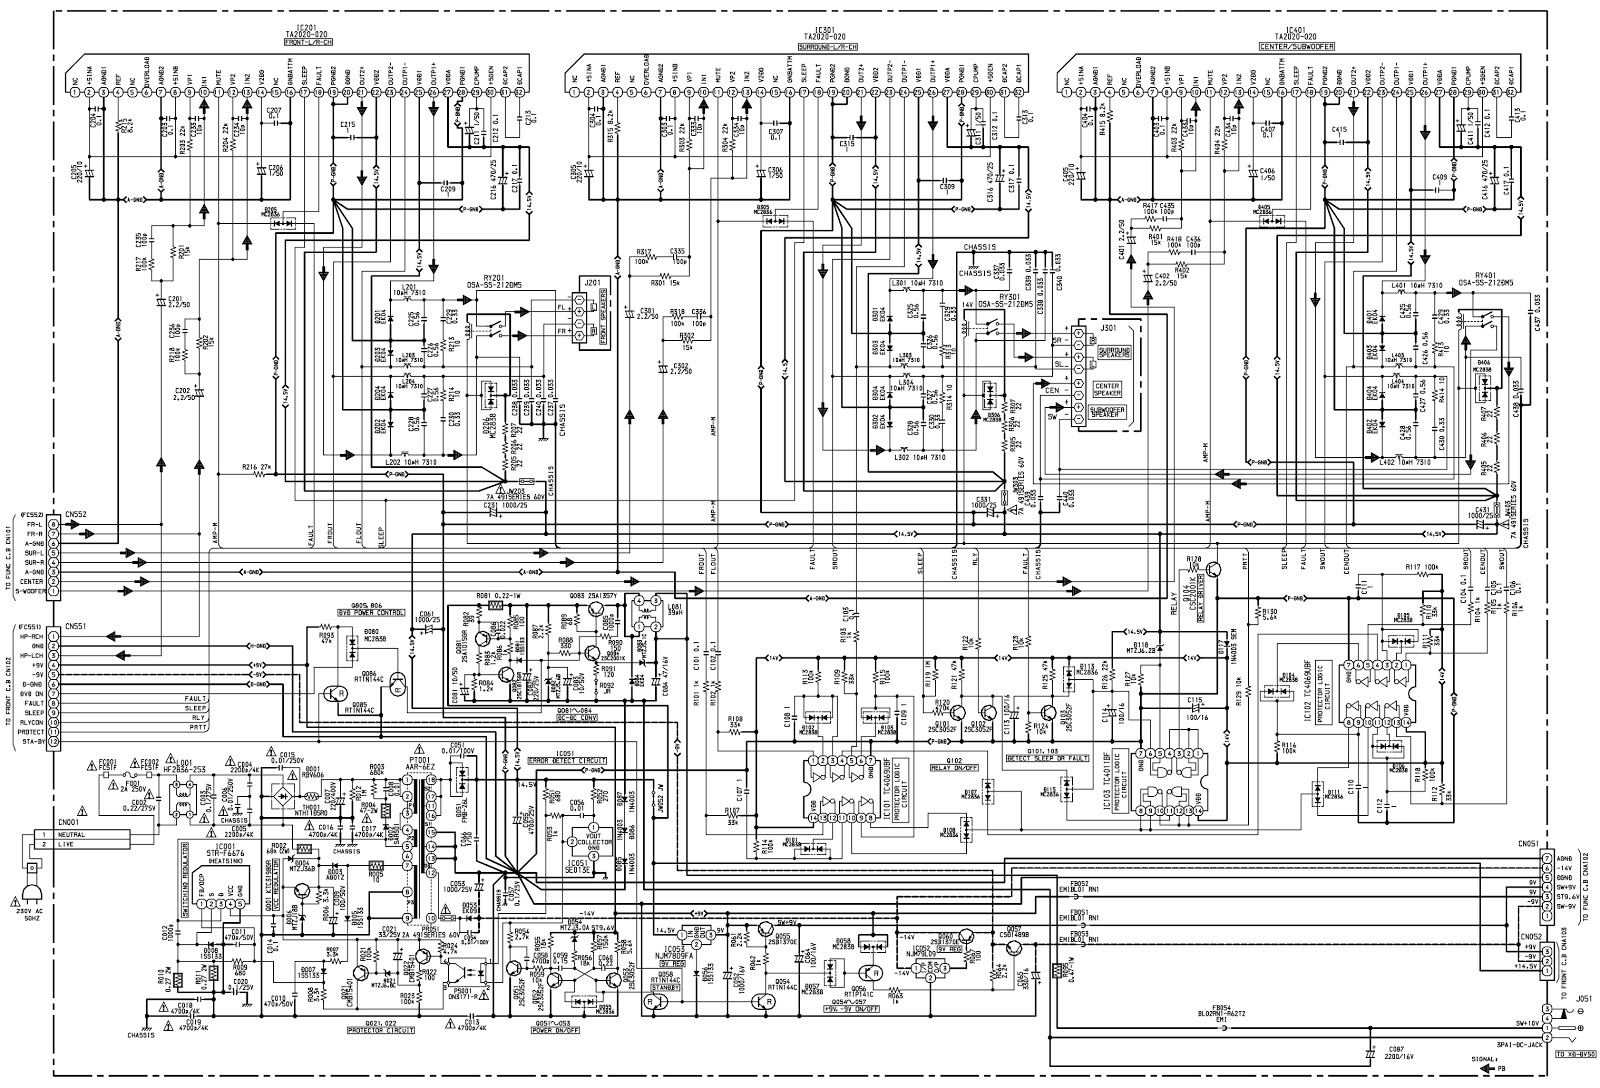 Aiwa Tv Circuit Diagram Wiring And Hub Color Television Se141 Type K Eg Schematic Ht Dv50 Hts Dvd System Power Amplifier Smps Rh Schematicscom Blogspot Com Diagrams A Simple Battery